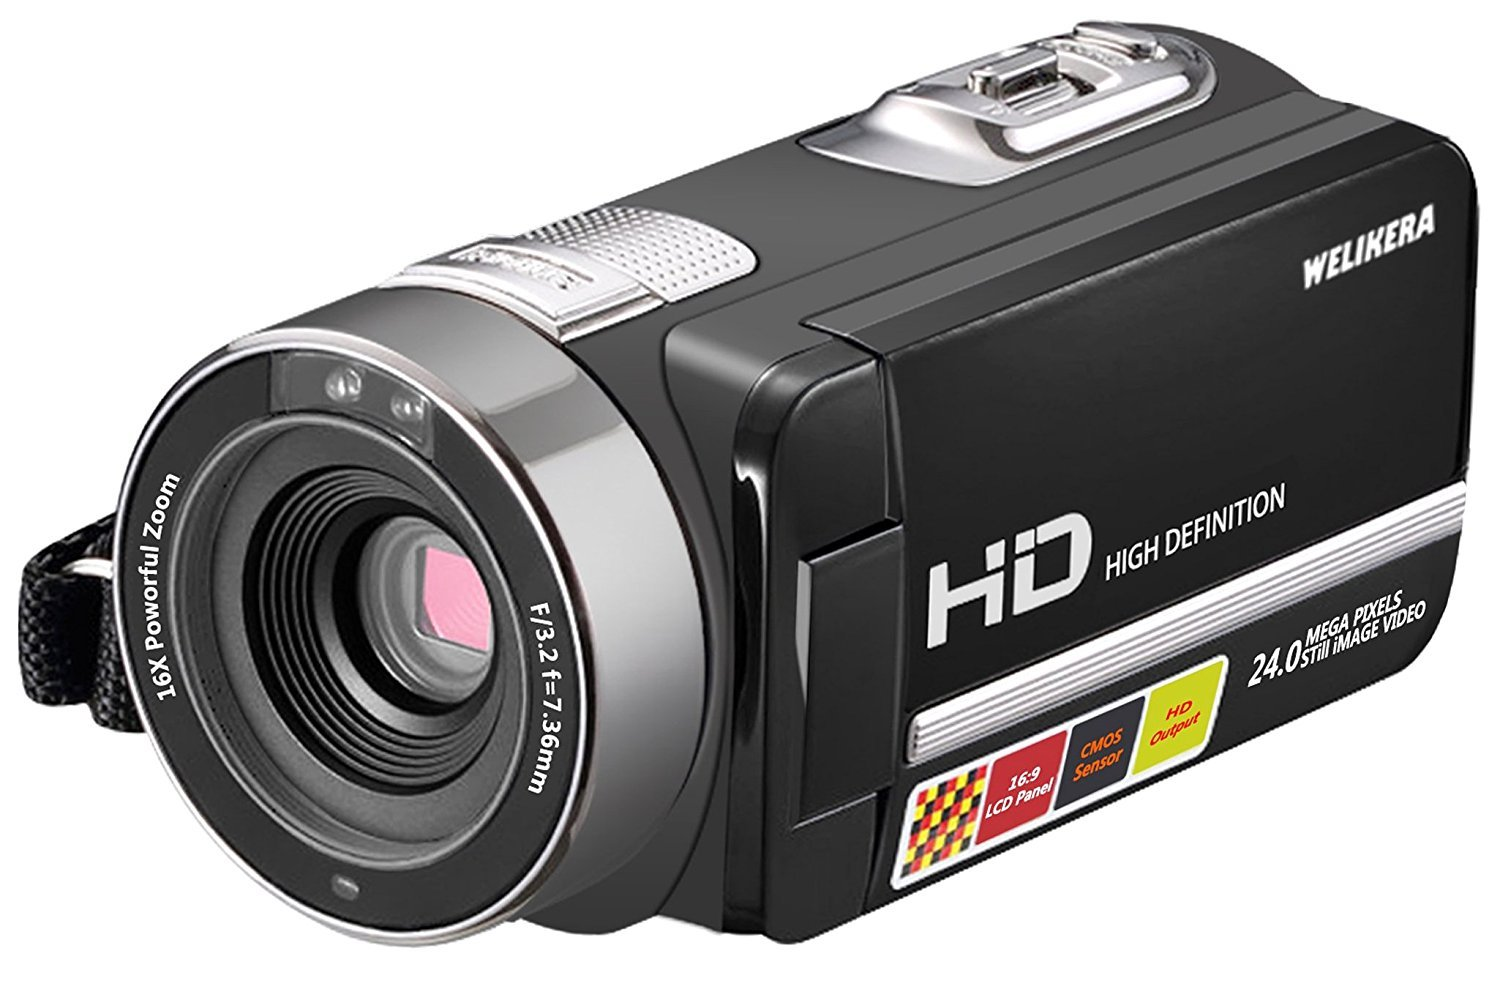 WELIKERA Camera Camcorder, Remote Control Handy Camera, IR Night Vision Camcorder, HD 1080P 24MP 16X Digital Zoom Video Camcorder with 3.0'' LCD and 270 Degree Rotation Screen